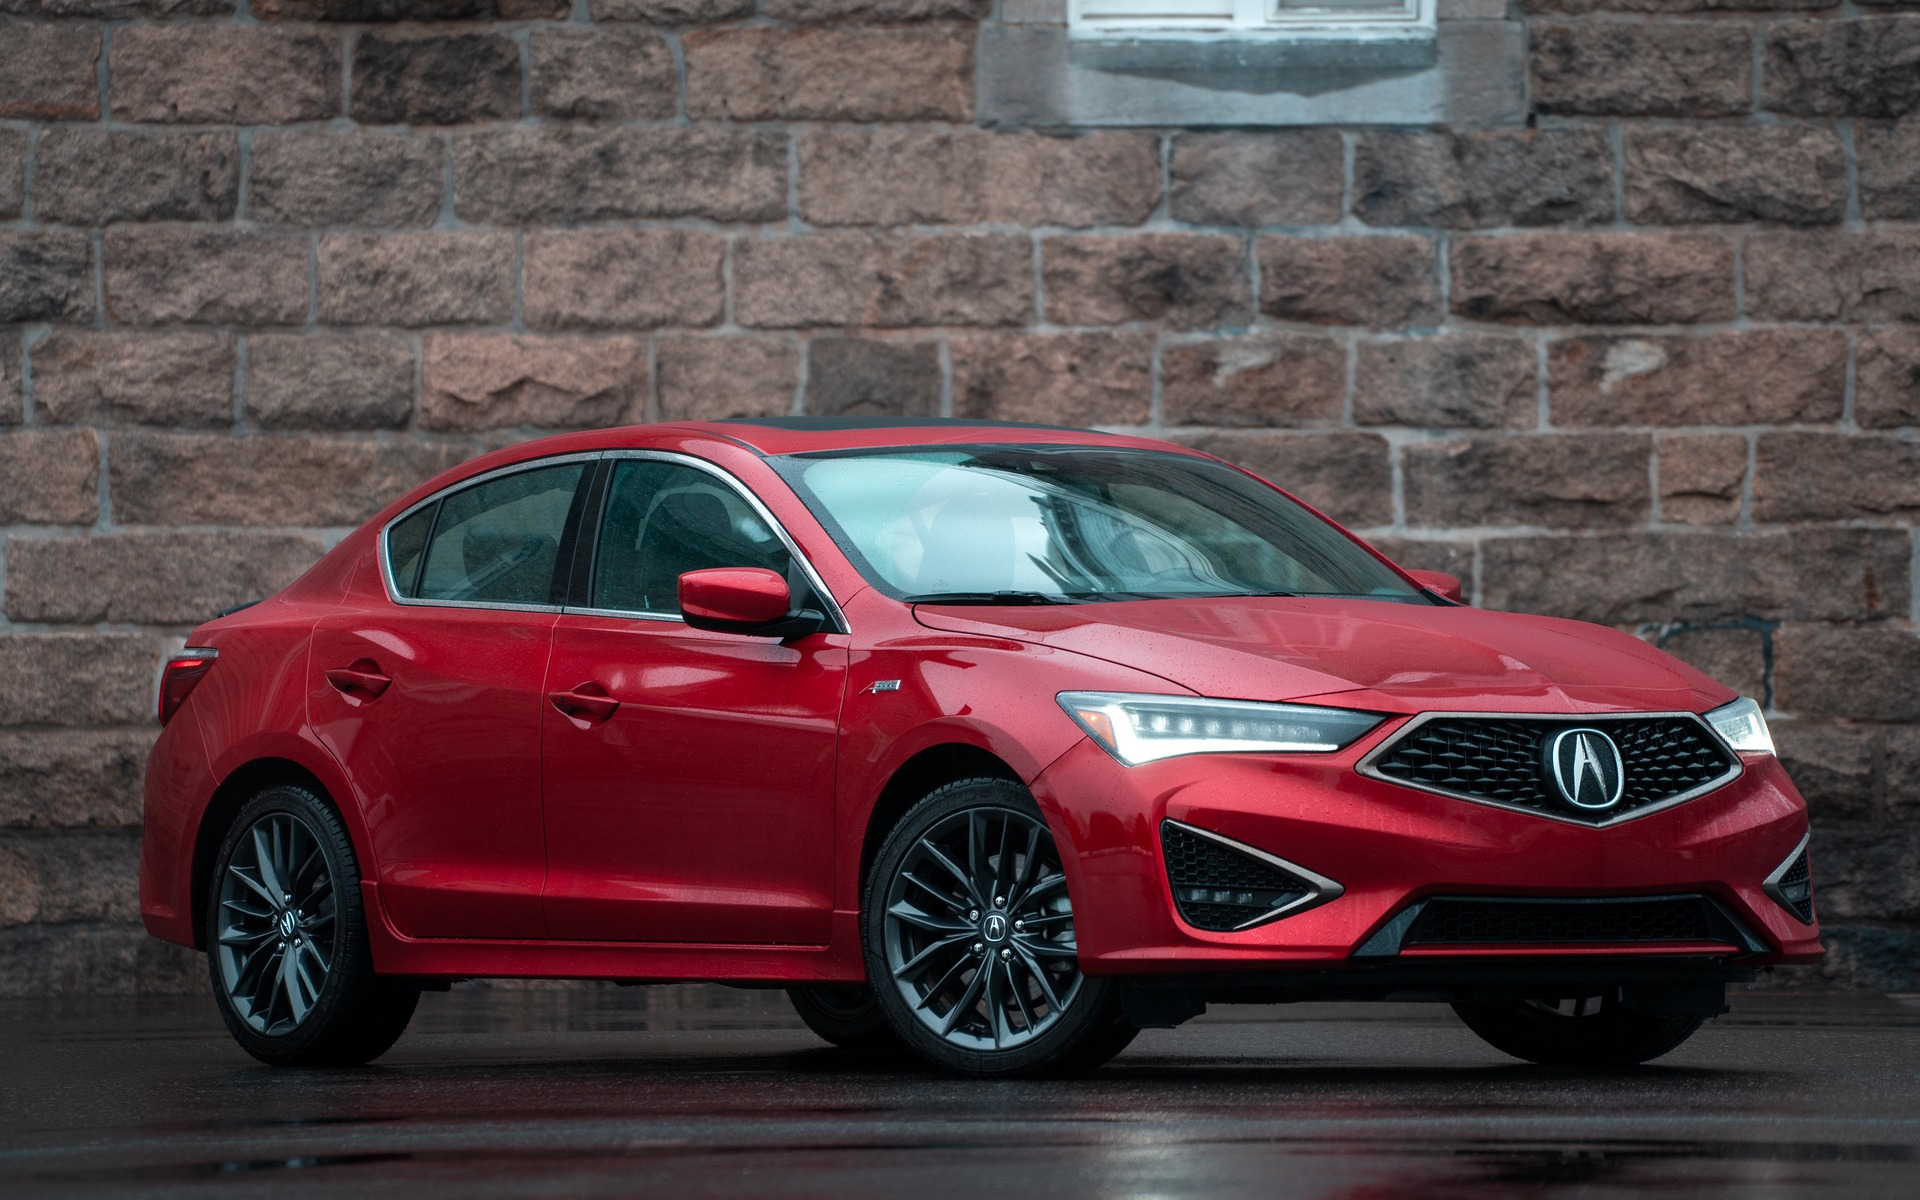 2019 Acura Ilx Recycling Done Well The Car Guide